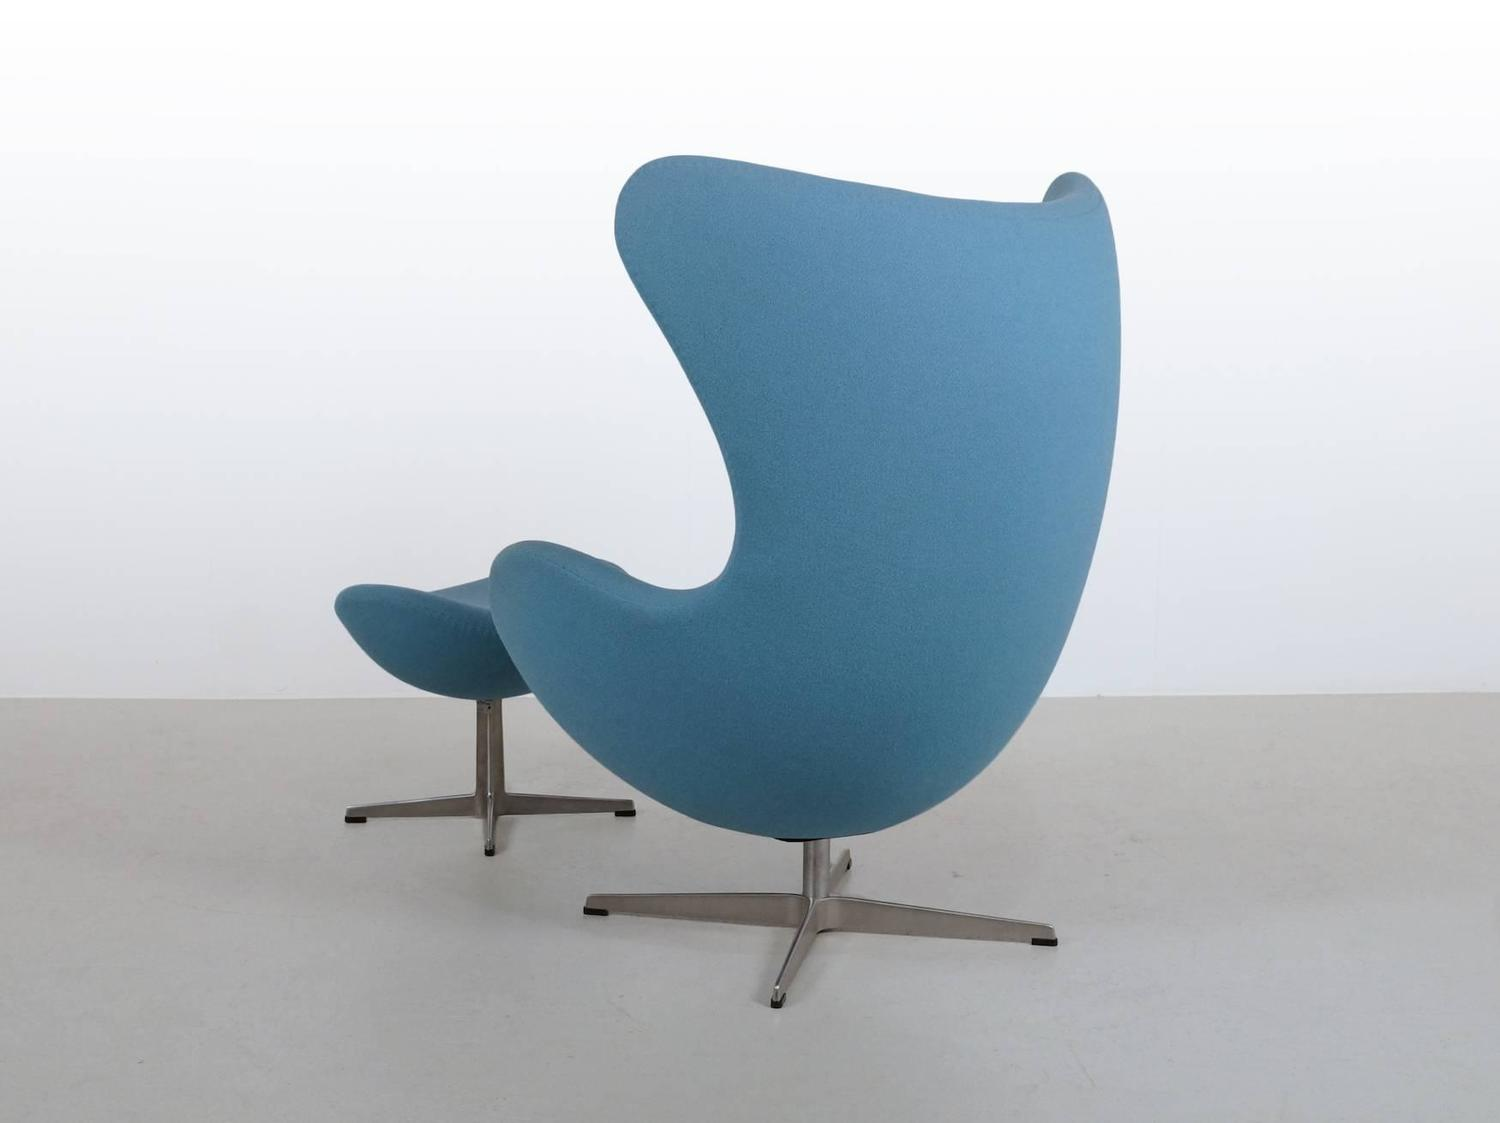 blue egg chair cover rental orland park arne jacobsen and ottoman by fritz hansen